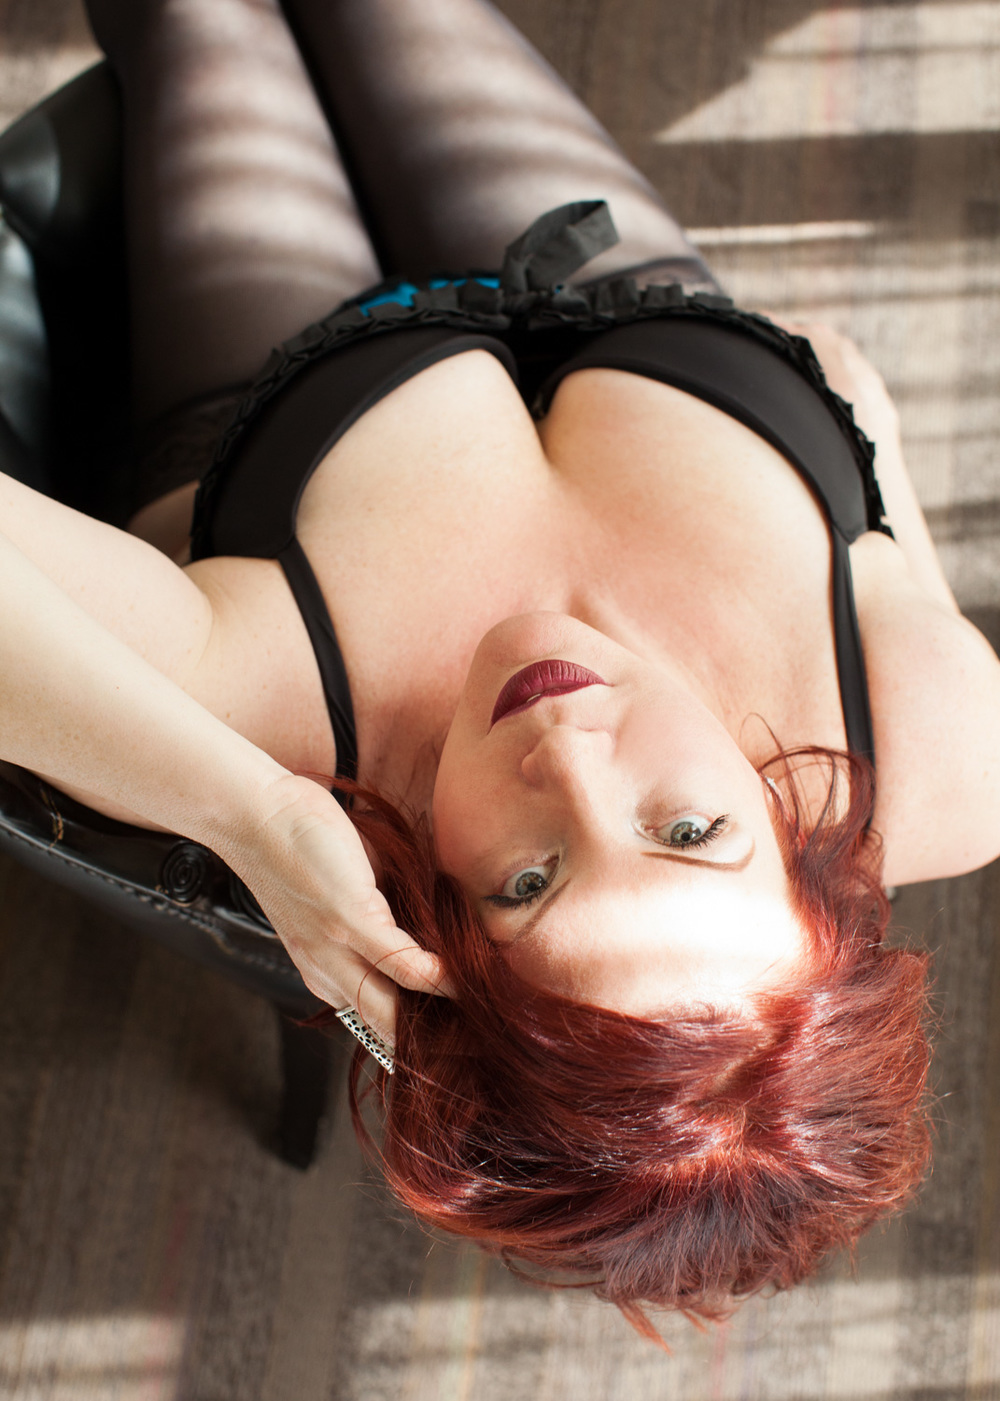 Bainbridge-Island-Boudoir-Photographers-Seattle-Boudoir-Photography_21.jpg